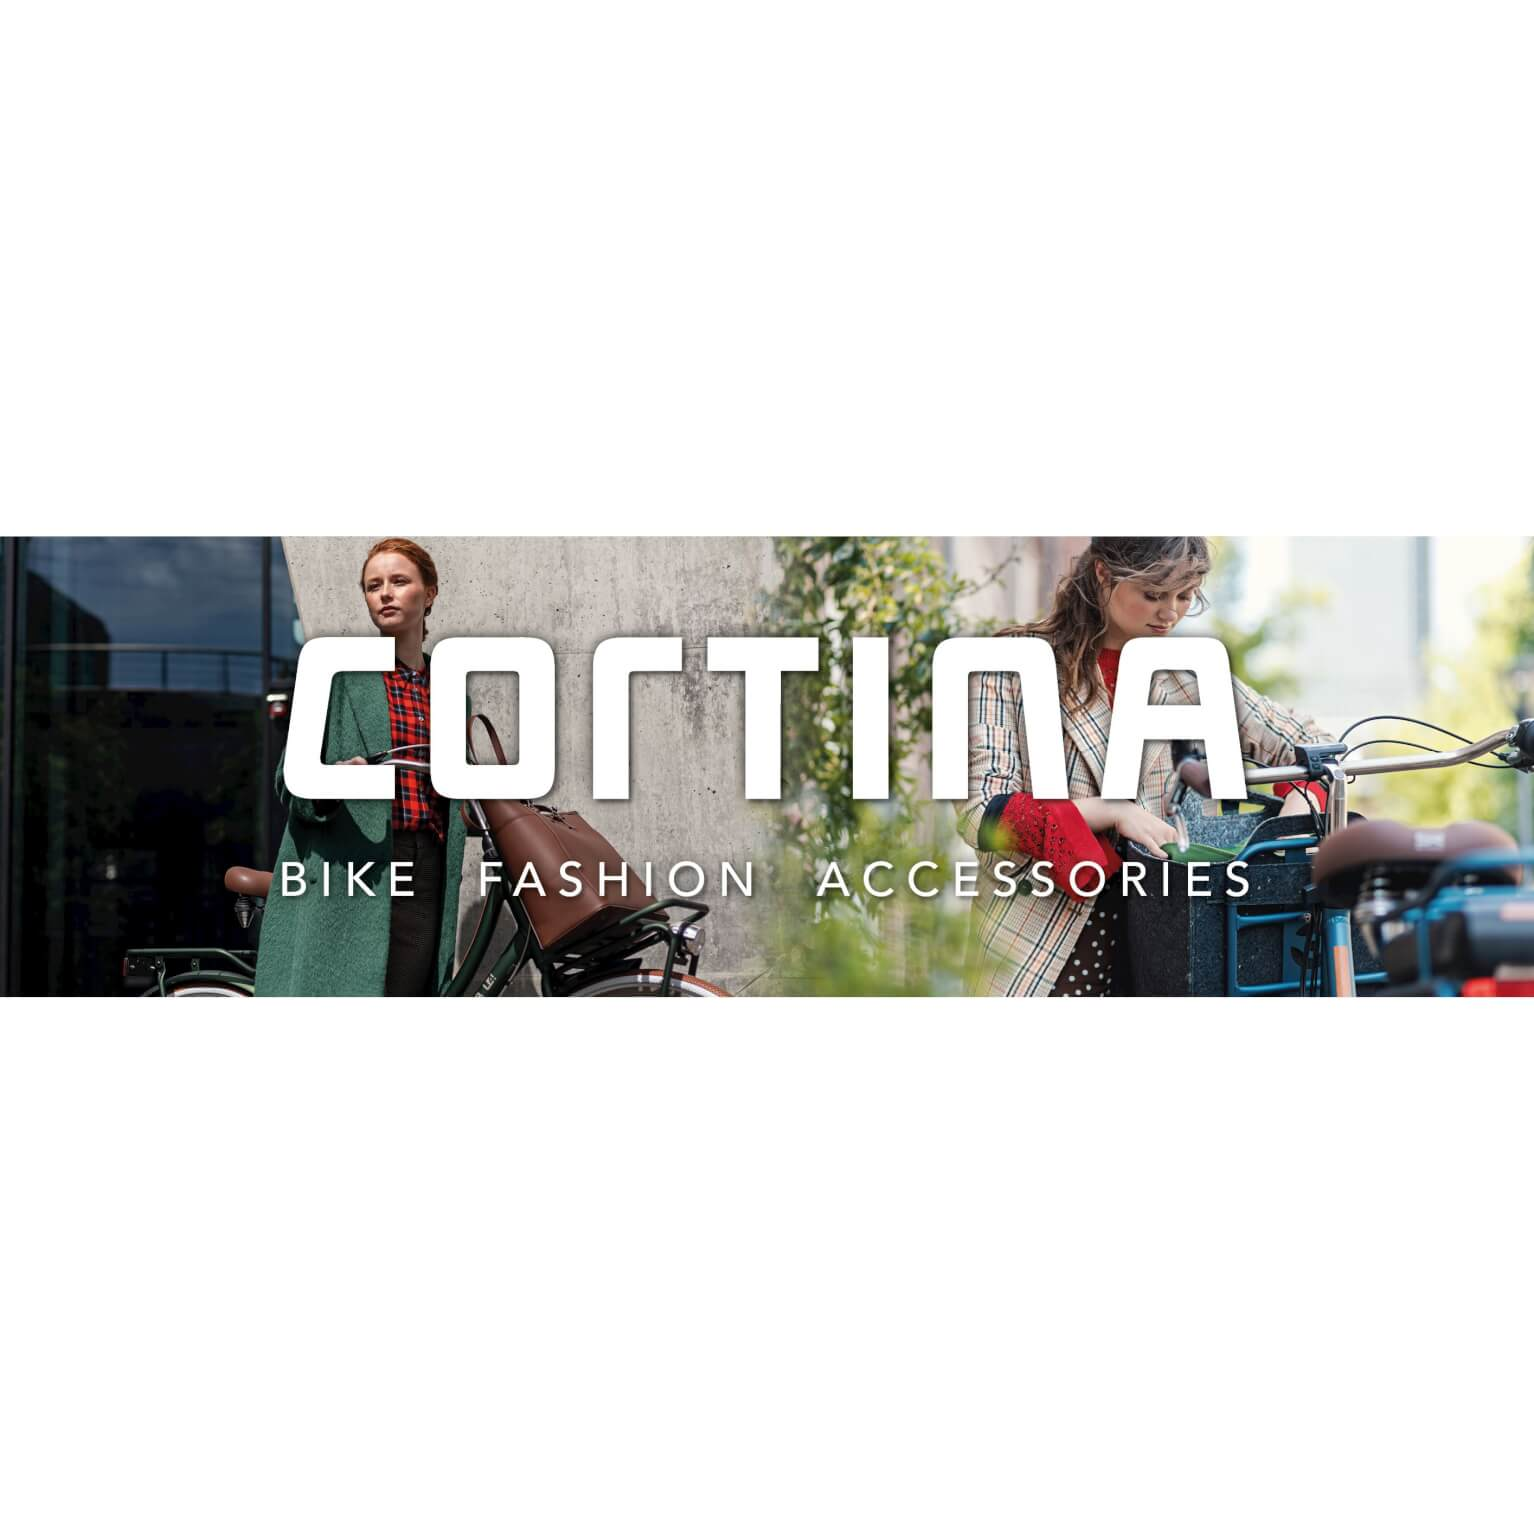 Cortina koofposter Bike Fashion Acc